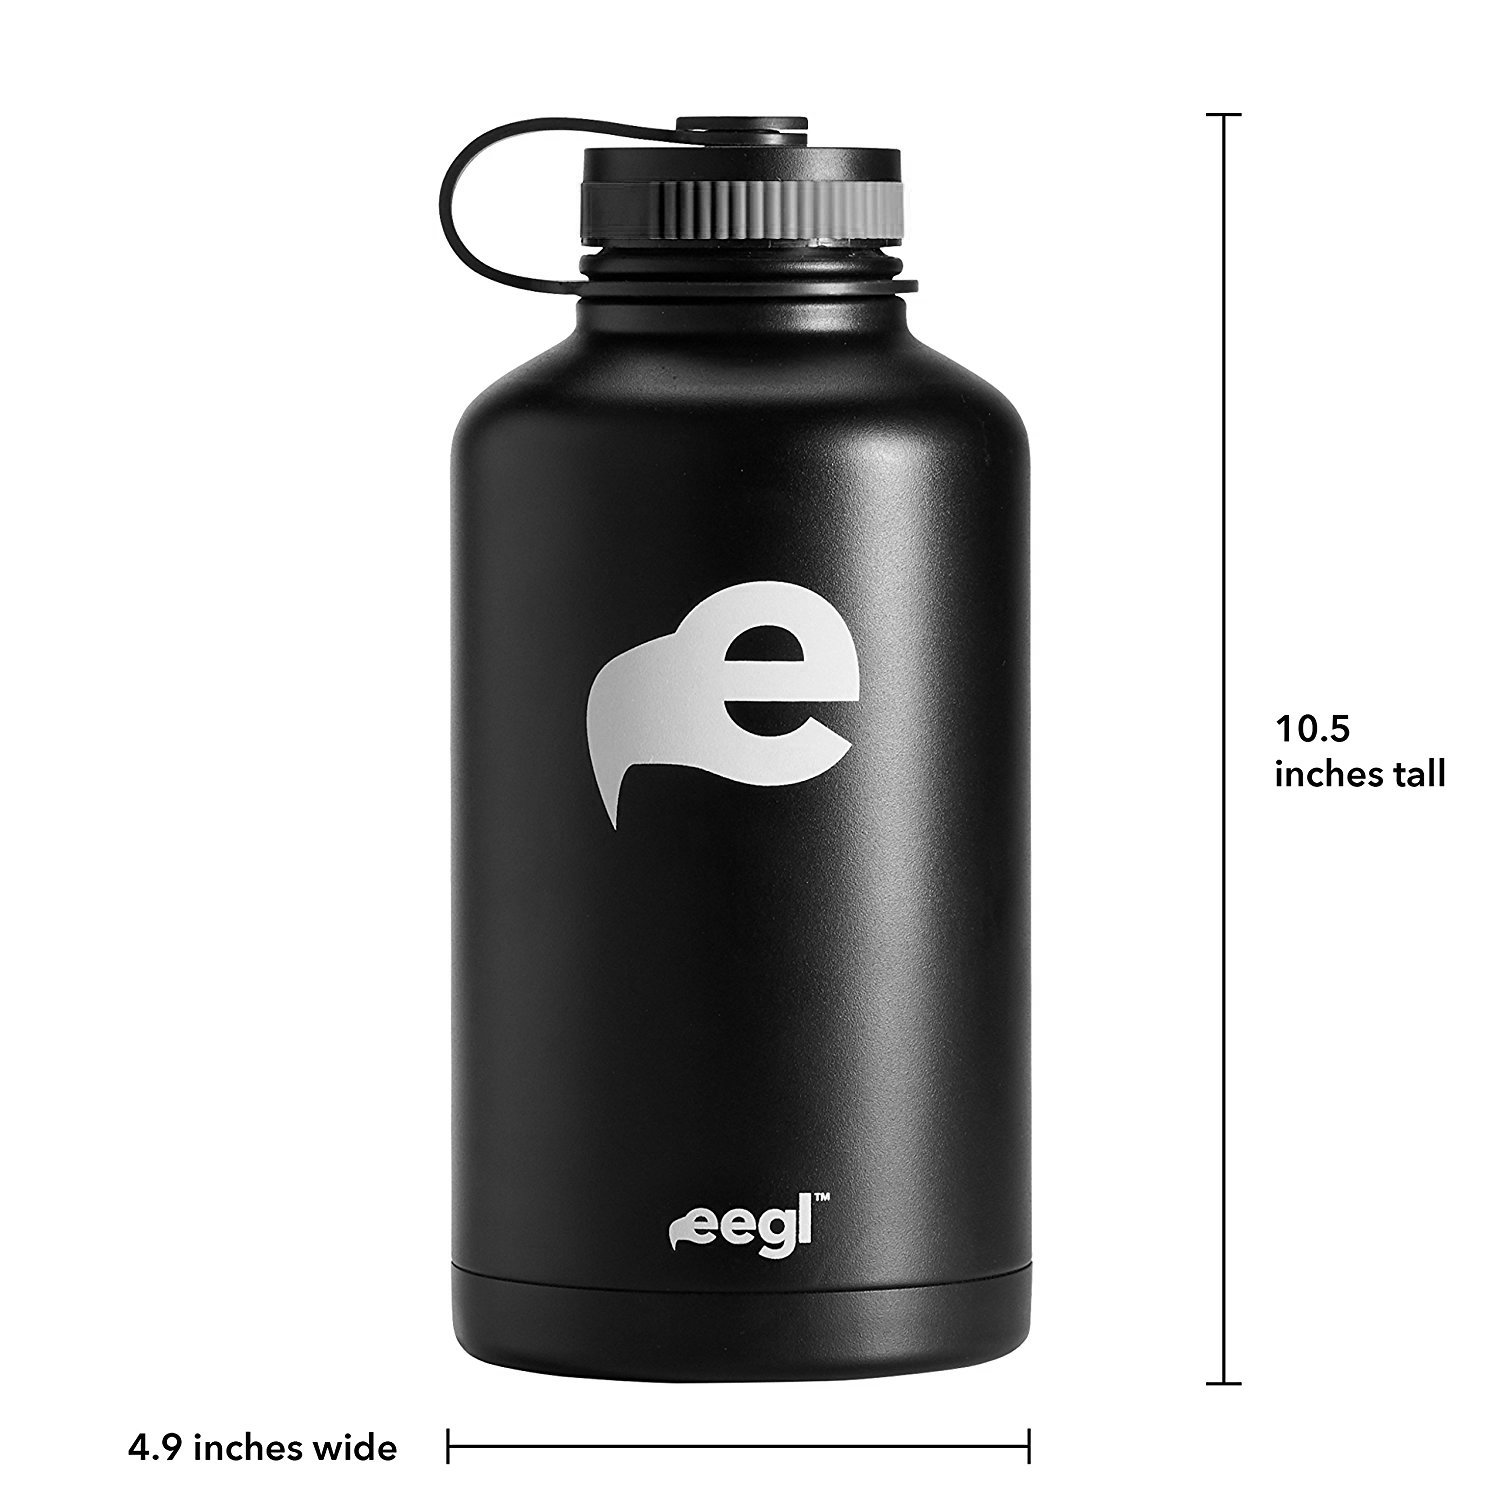 eegl Stainless Steel Insulated Beer Growler - 64 oz Water Bottle - Includes Carry Case - Double Wall Vacuum Sealed Wide Mouth Design. Five Year Guarantee! Perfect Temperature Control from by eegl (Image #2)